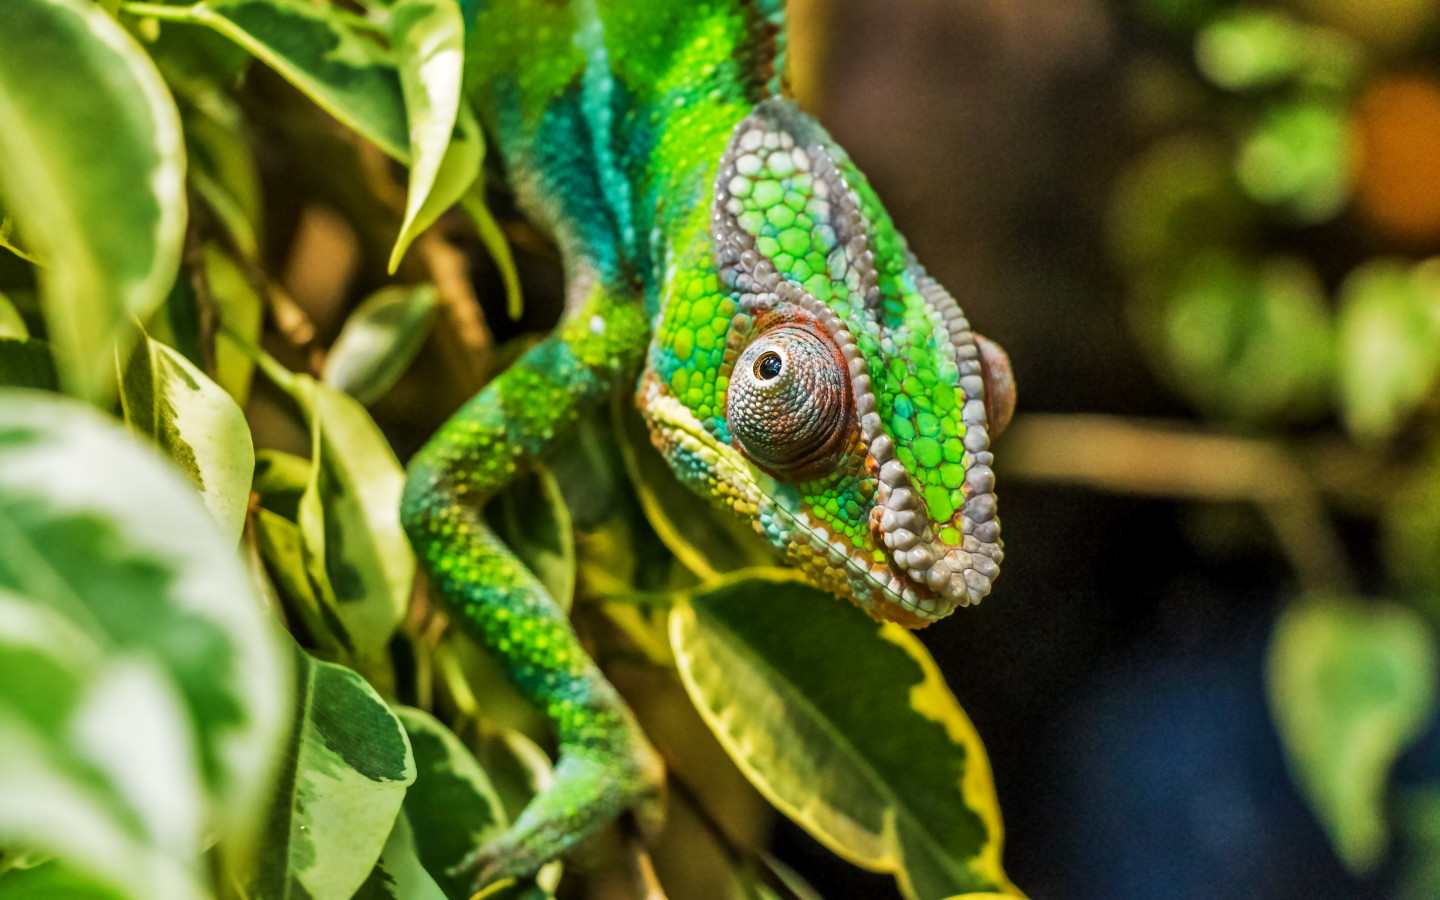 Panther chameleon reptile wallpaper 1440x900